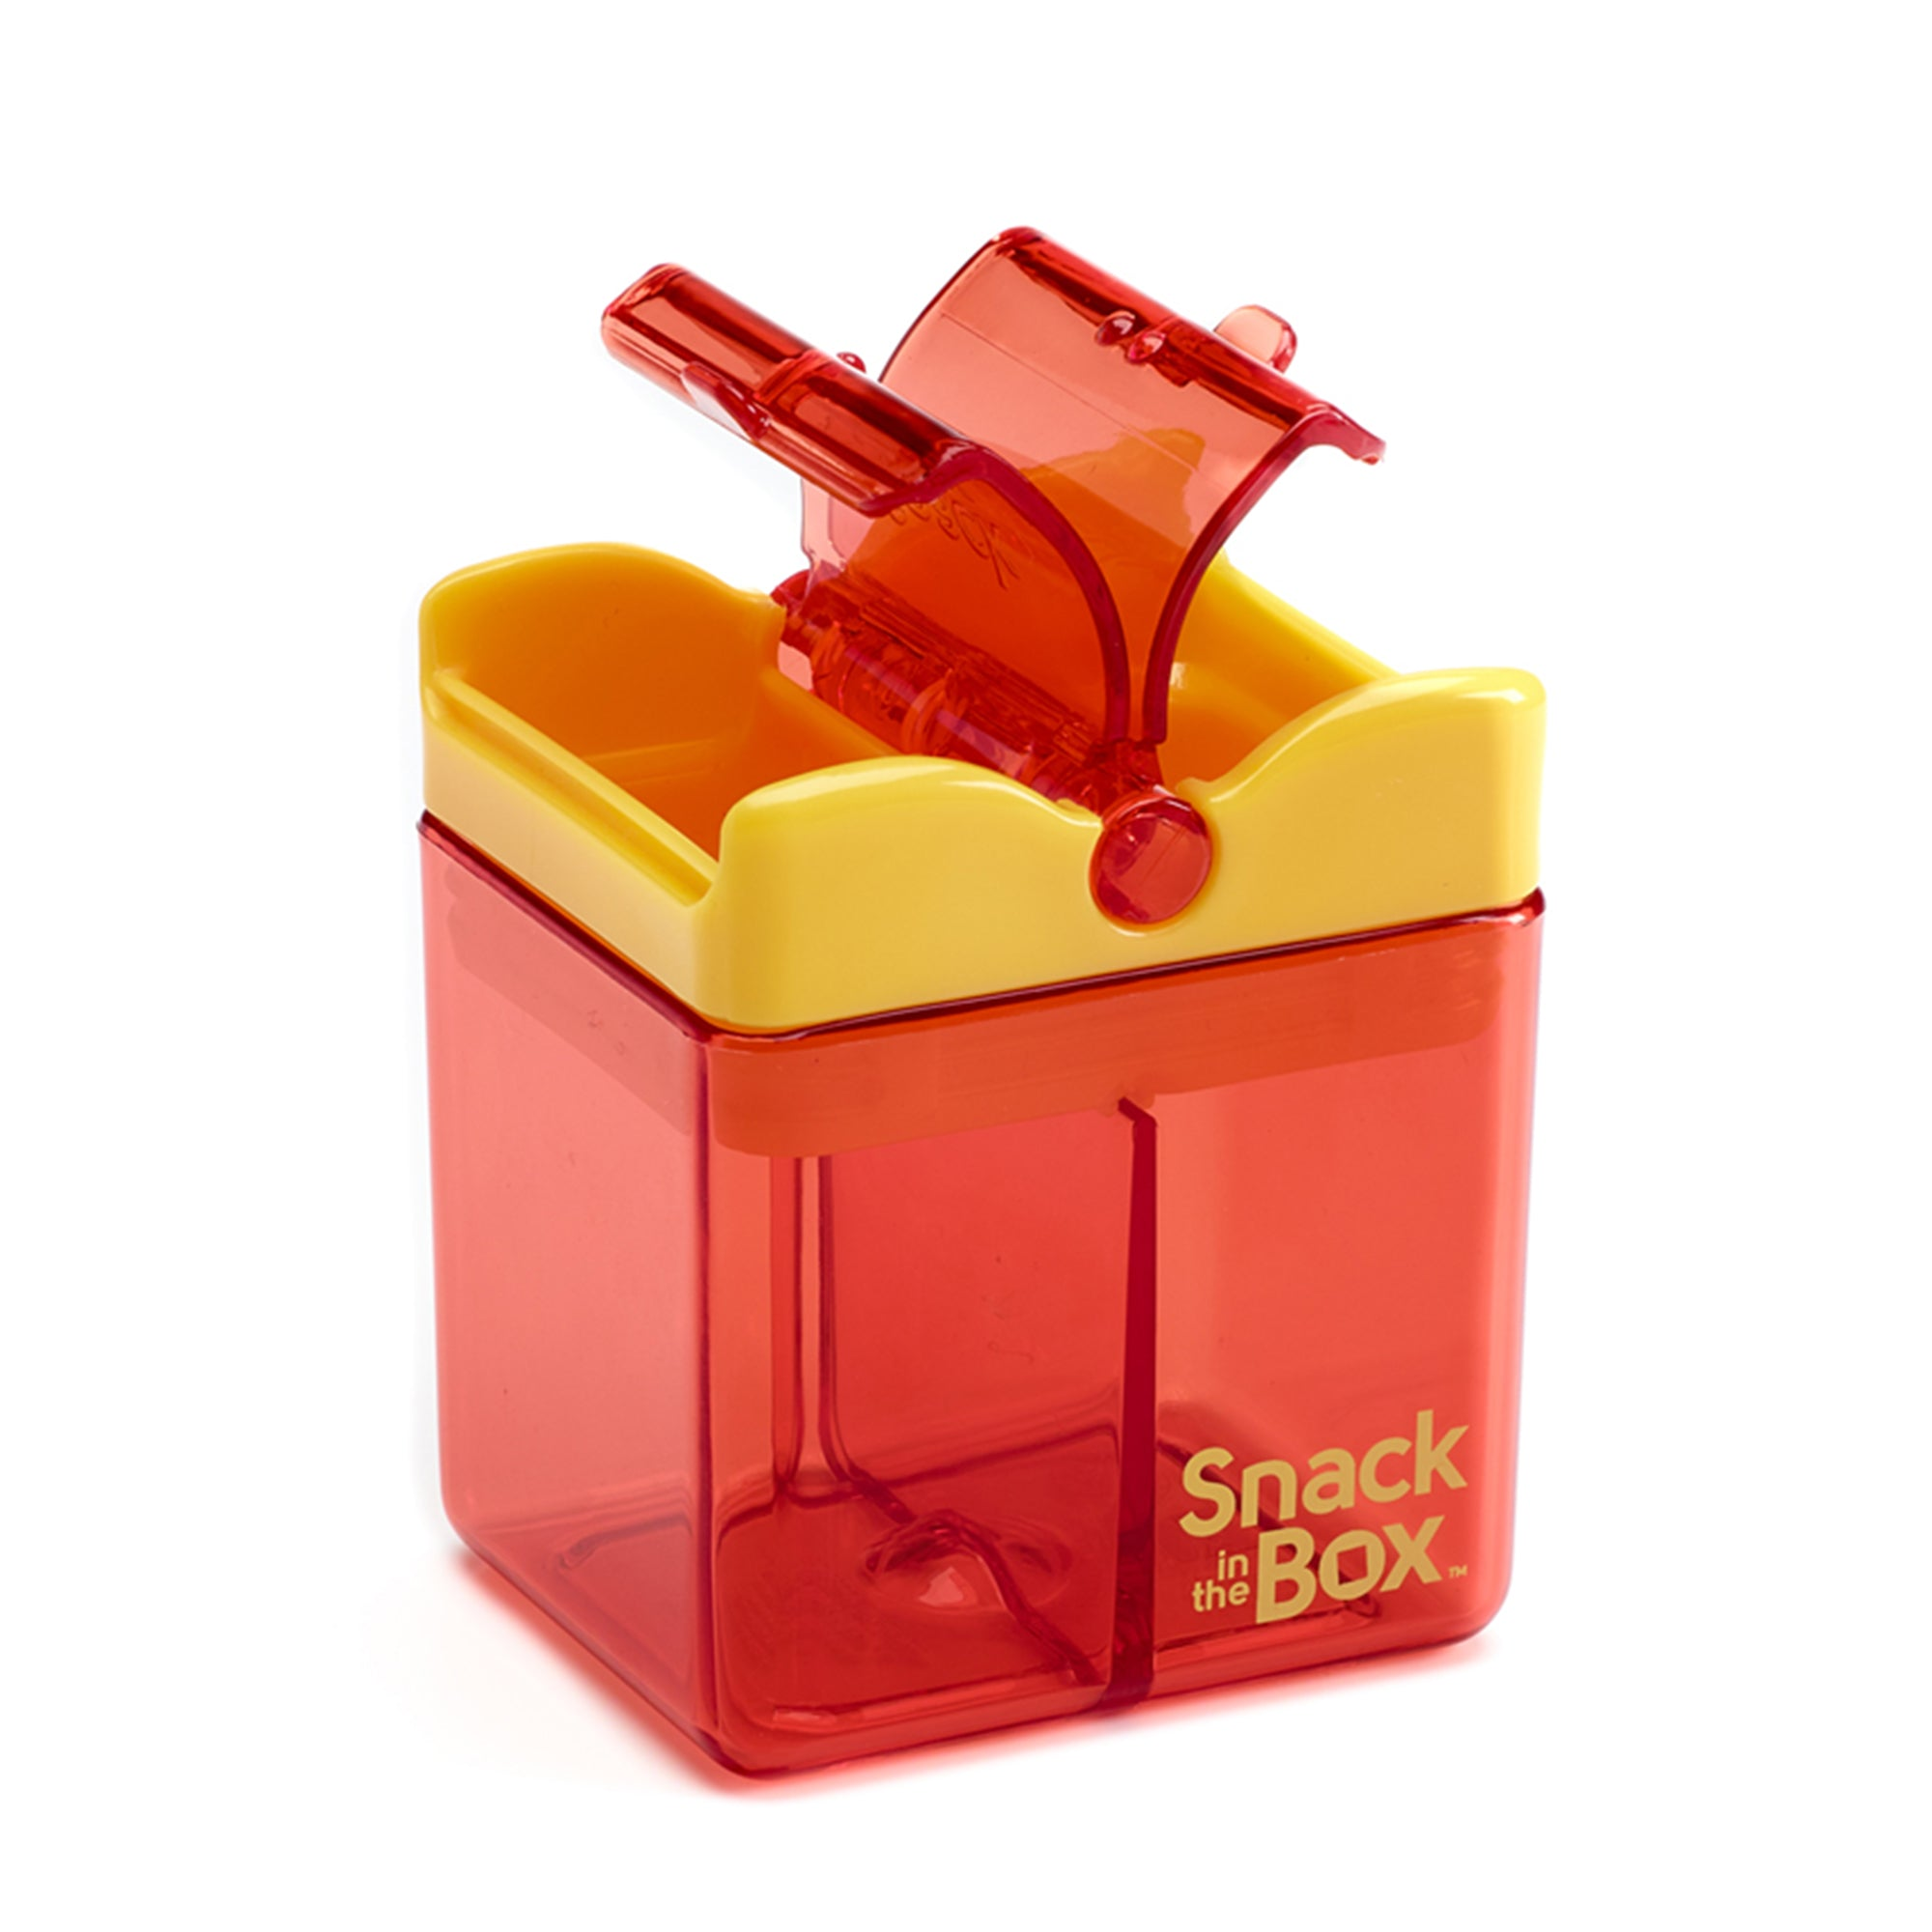 Snack in the Box • Contenant à collations [nouveau design]